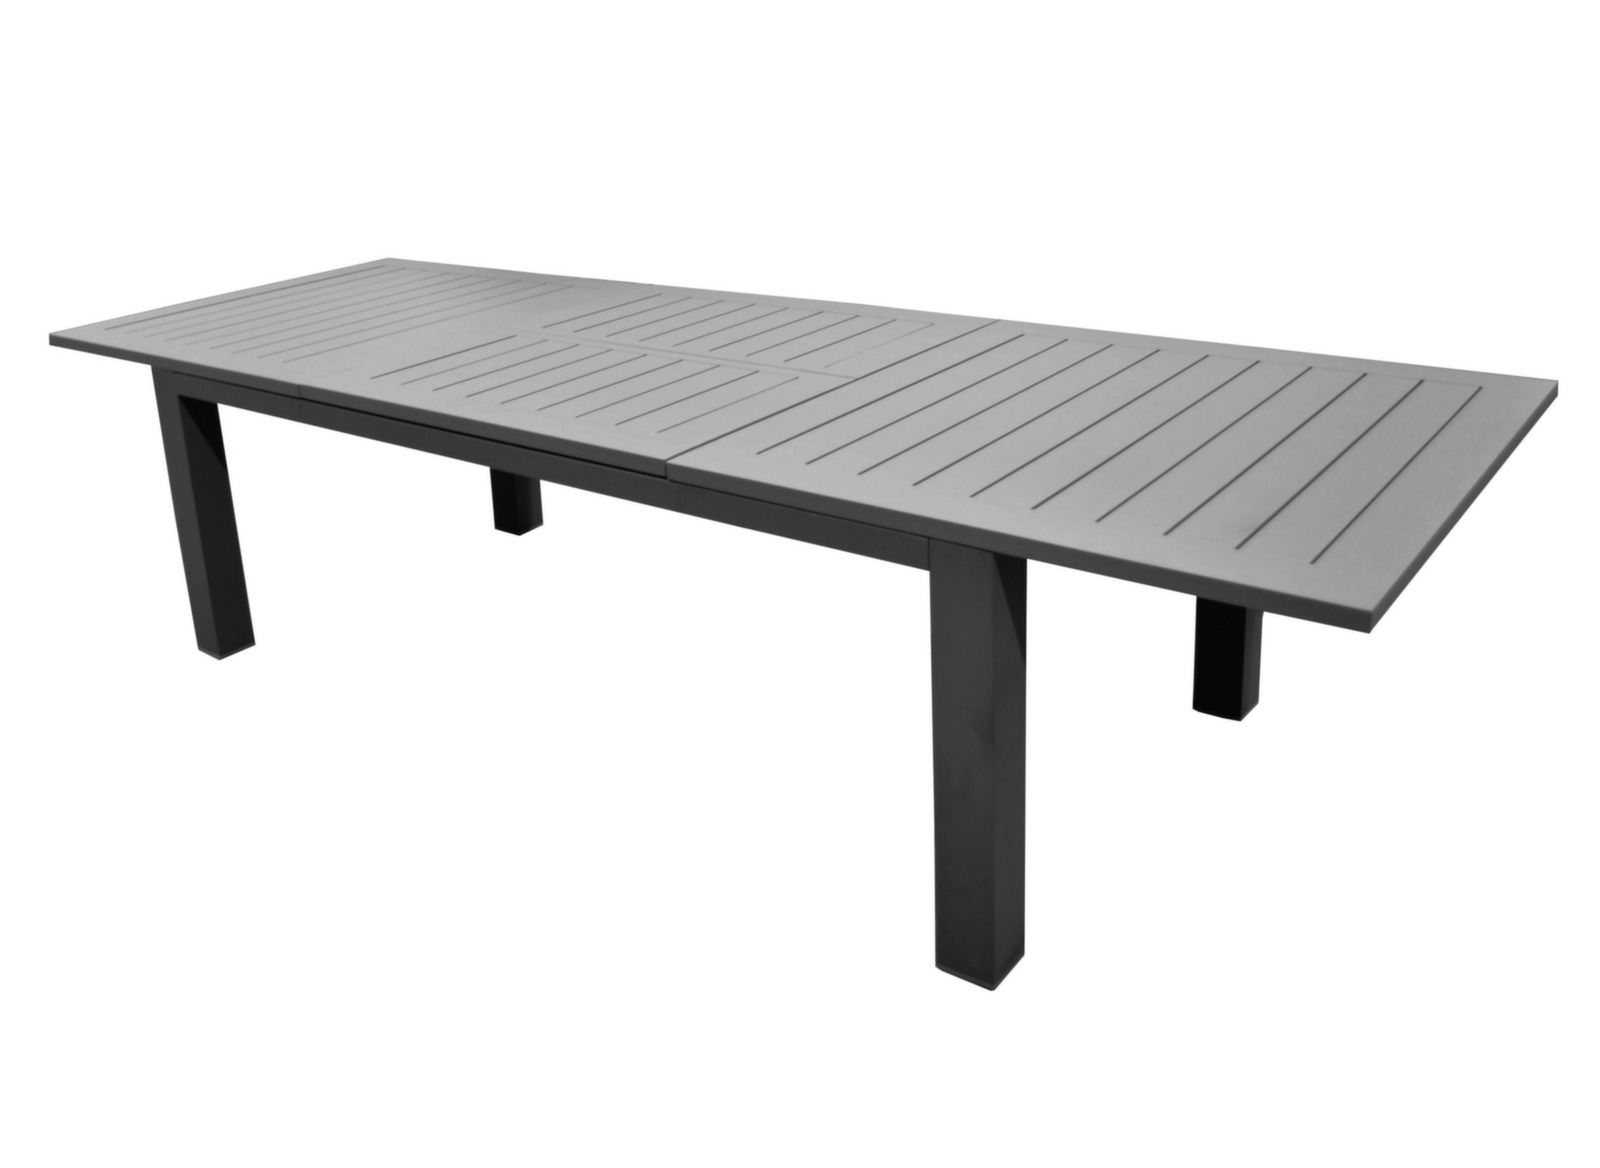 Table de jardin aluminium 12 places aurore oc o proloisirs for Table design 10 personnes